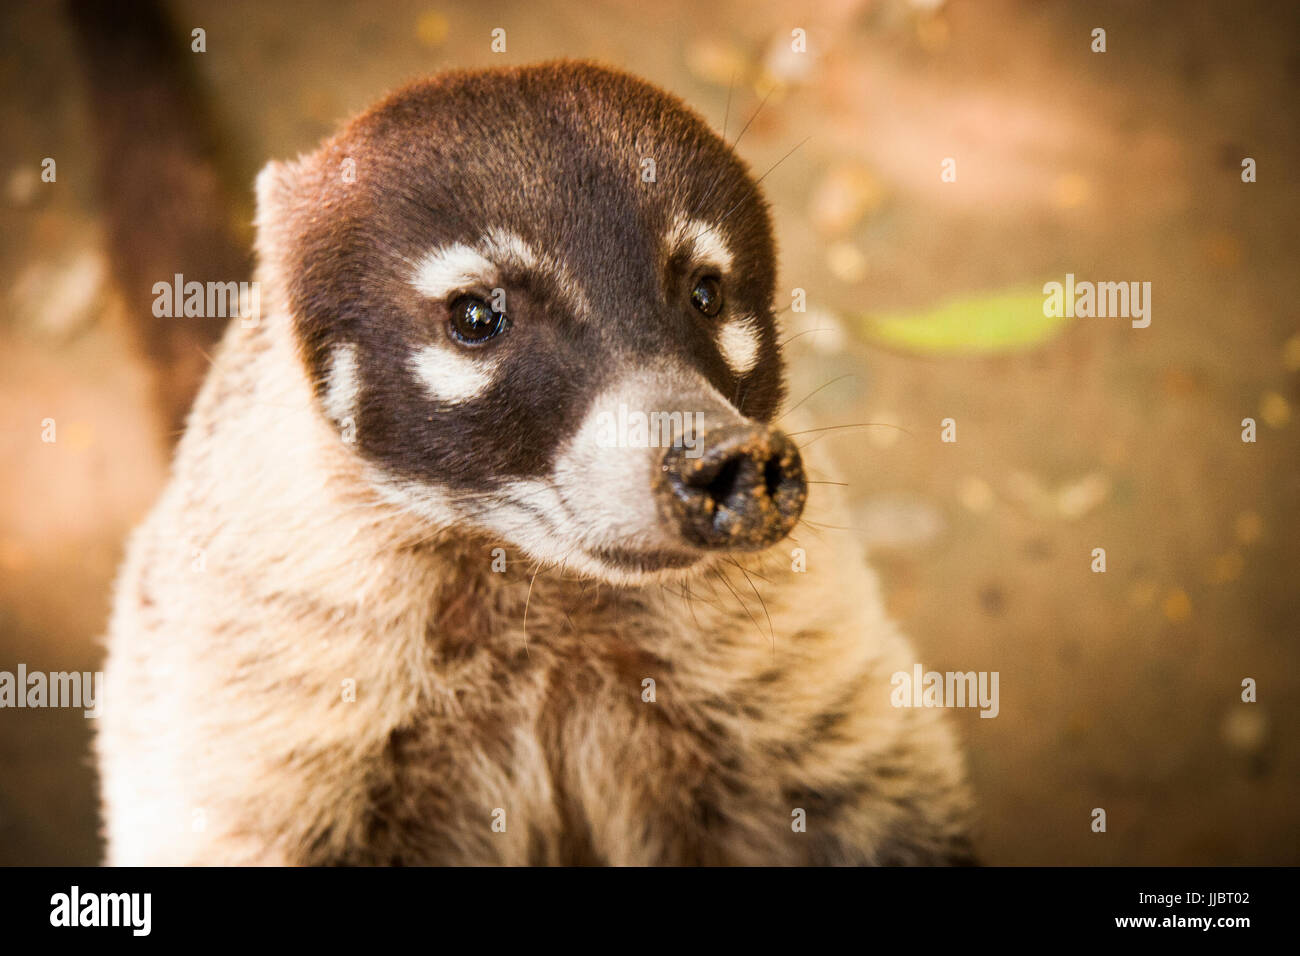 Coati animal wild cute face portrait - Stock Image